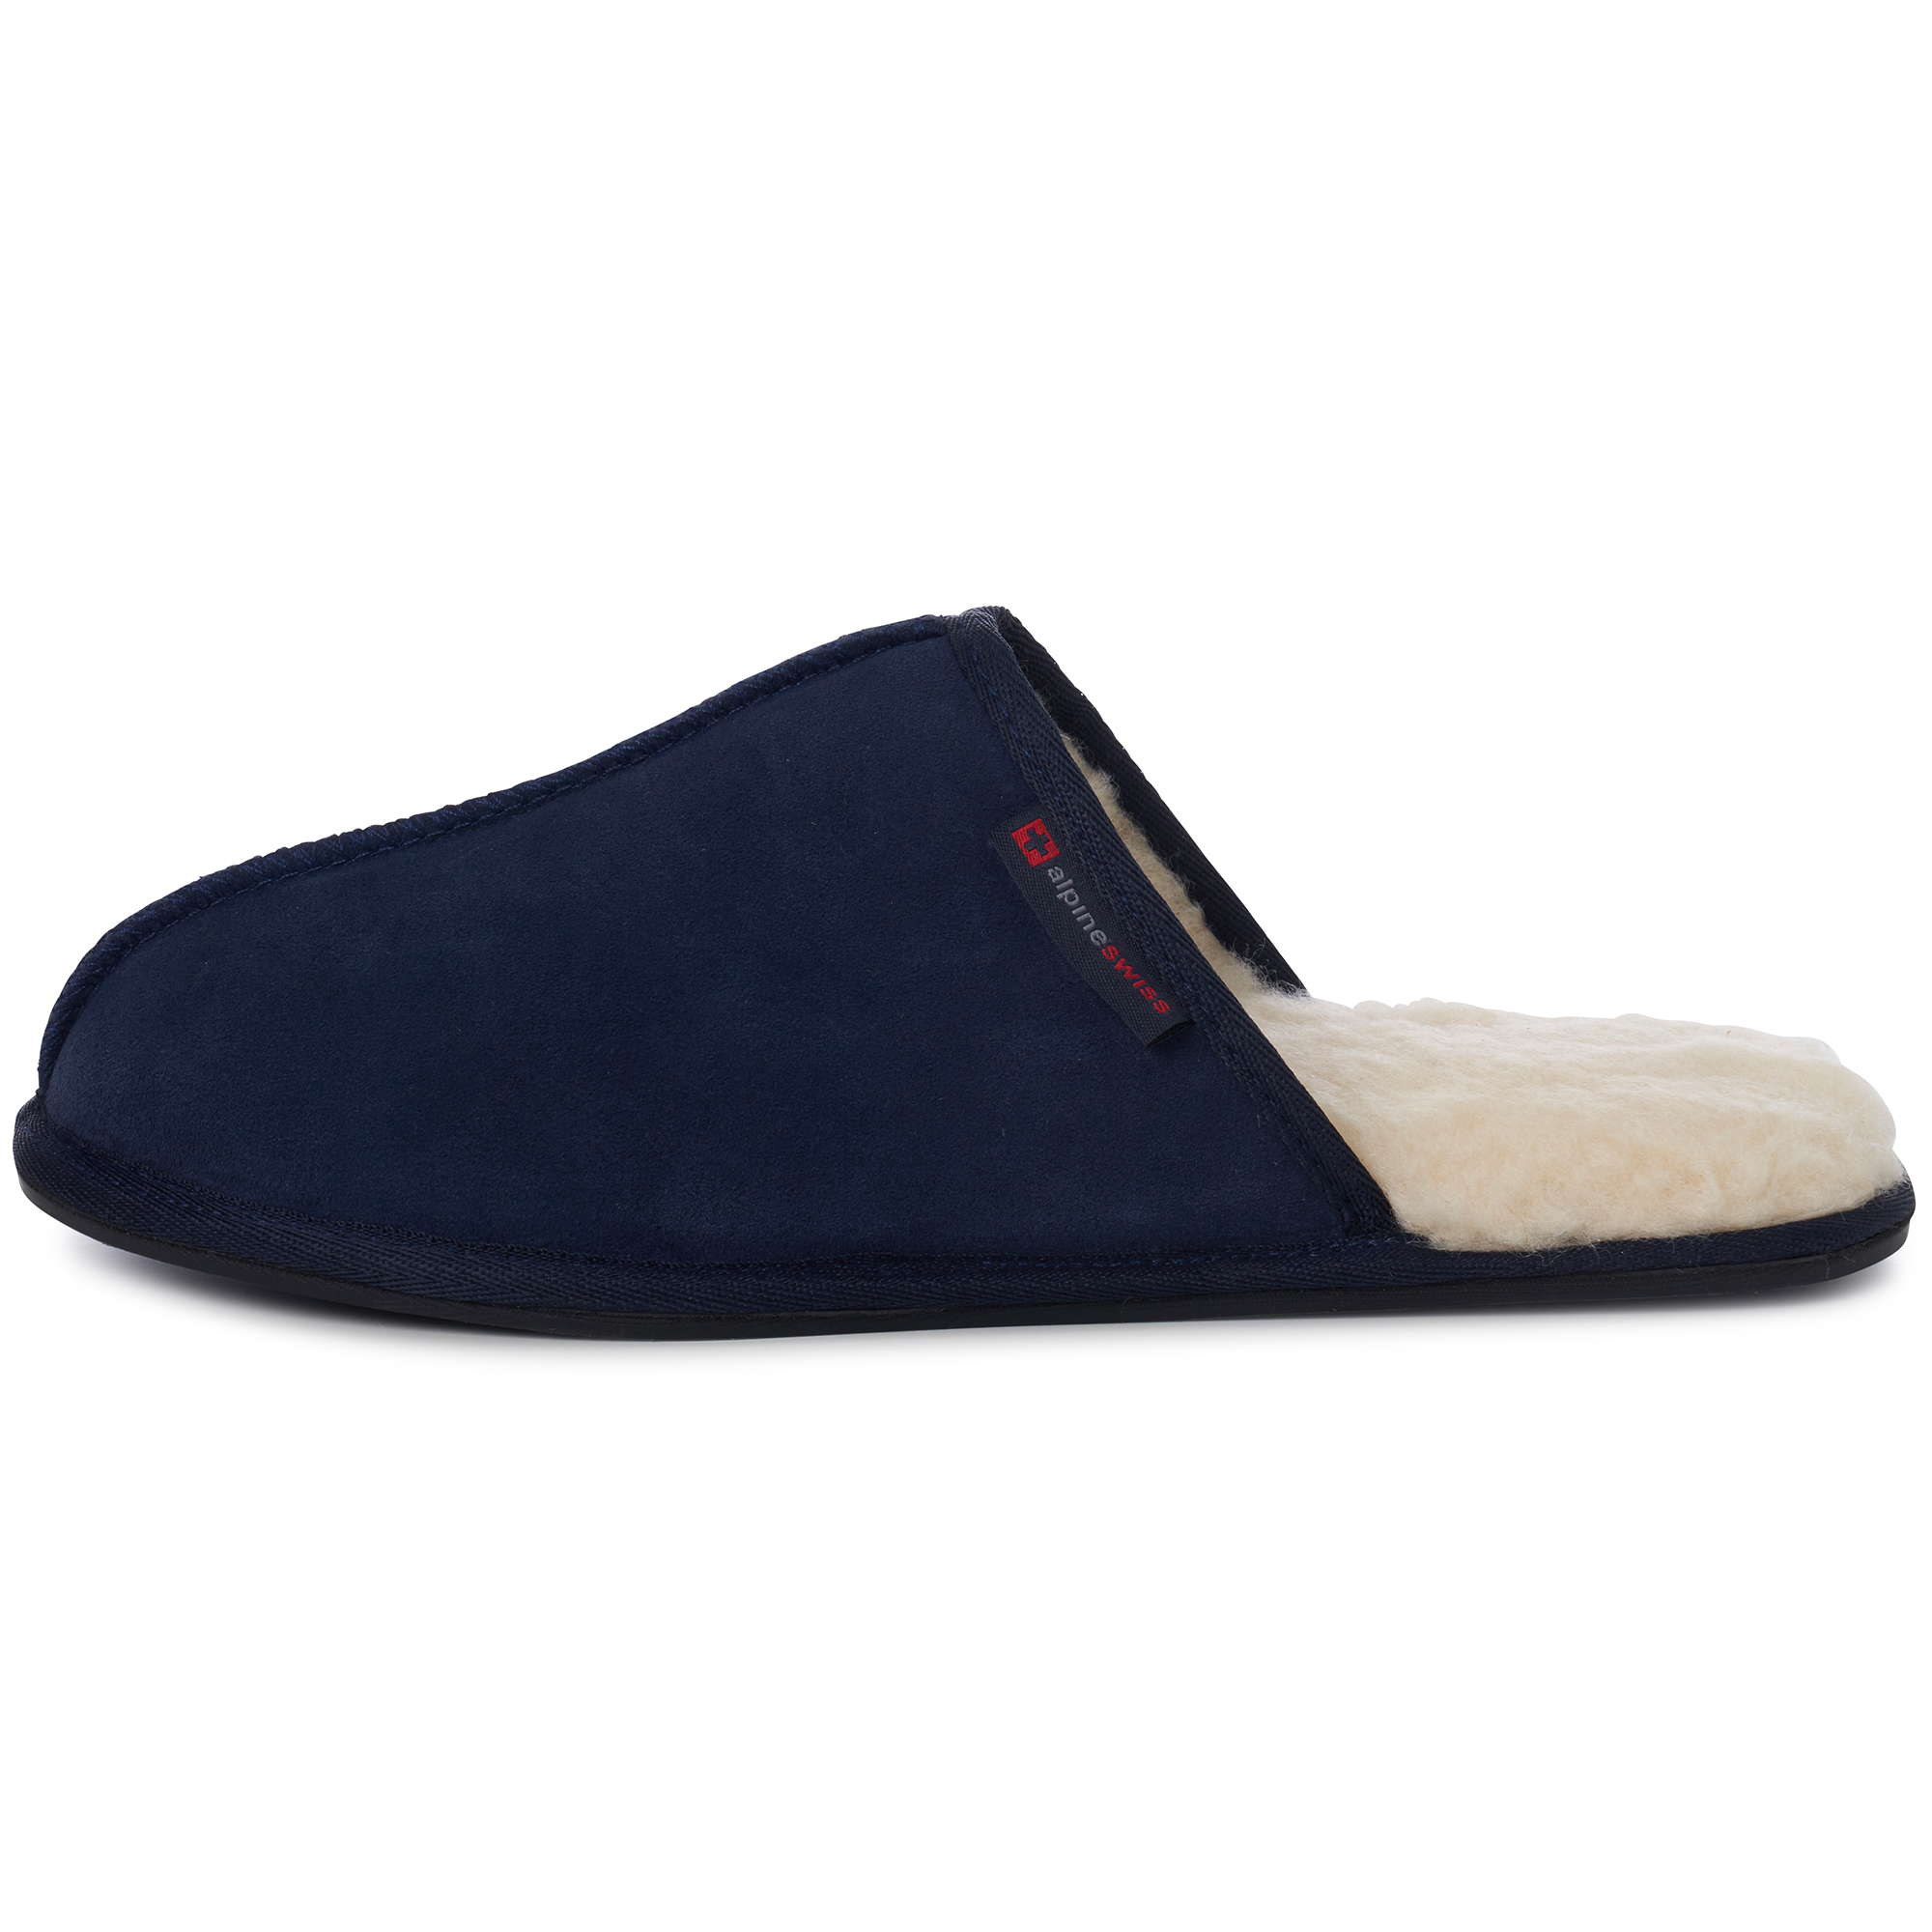 Alpine-Swiss-Mens-Suede-Memory-Foam-Scuff-Slippers-Comfort-Slip-On-House-Shoes thumbnail 31